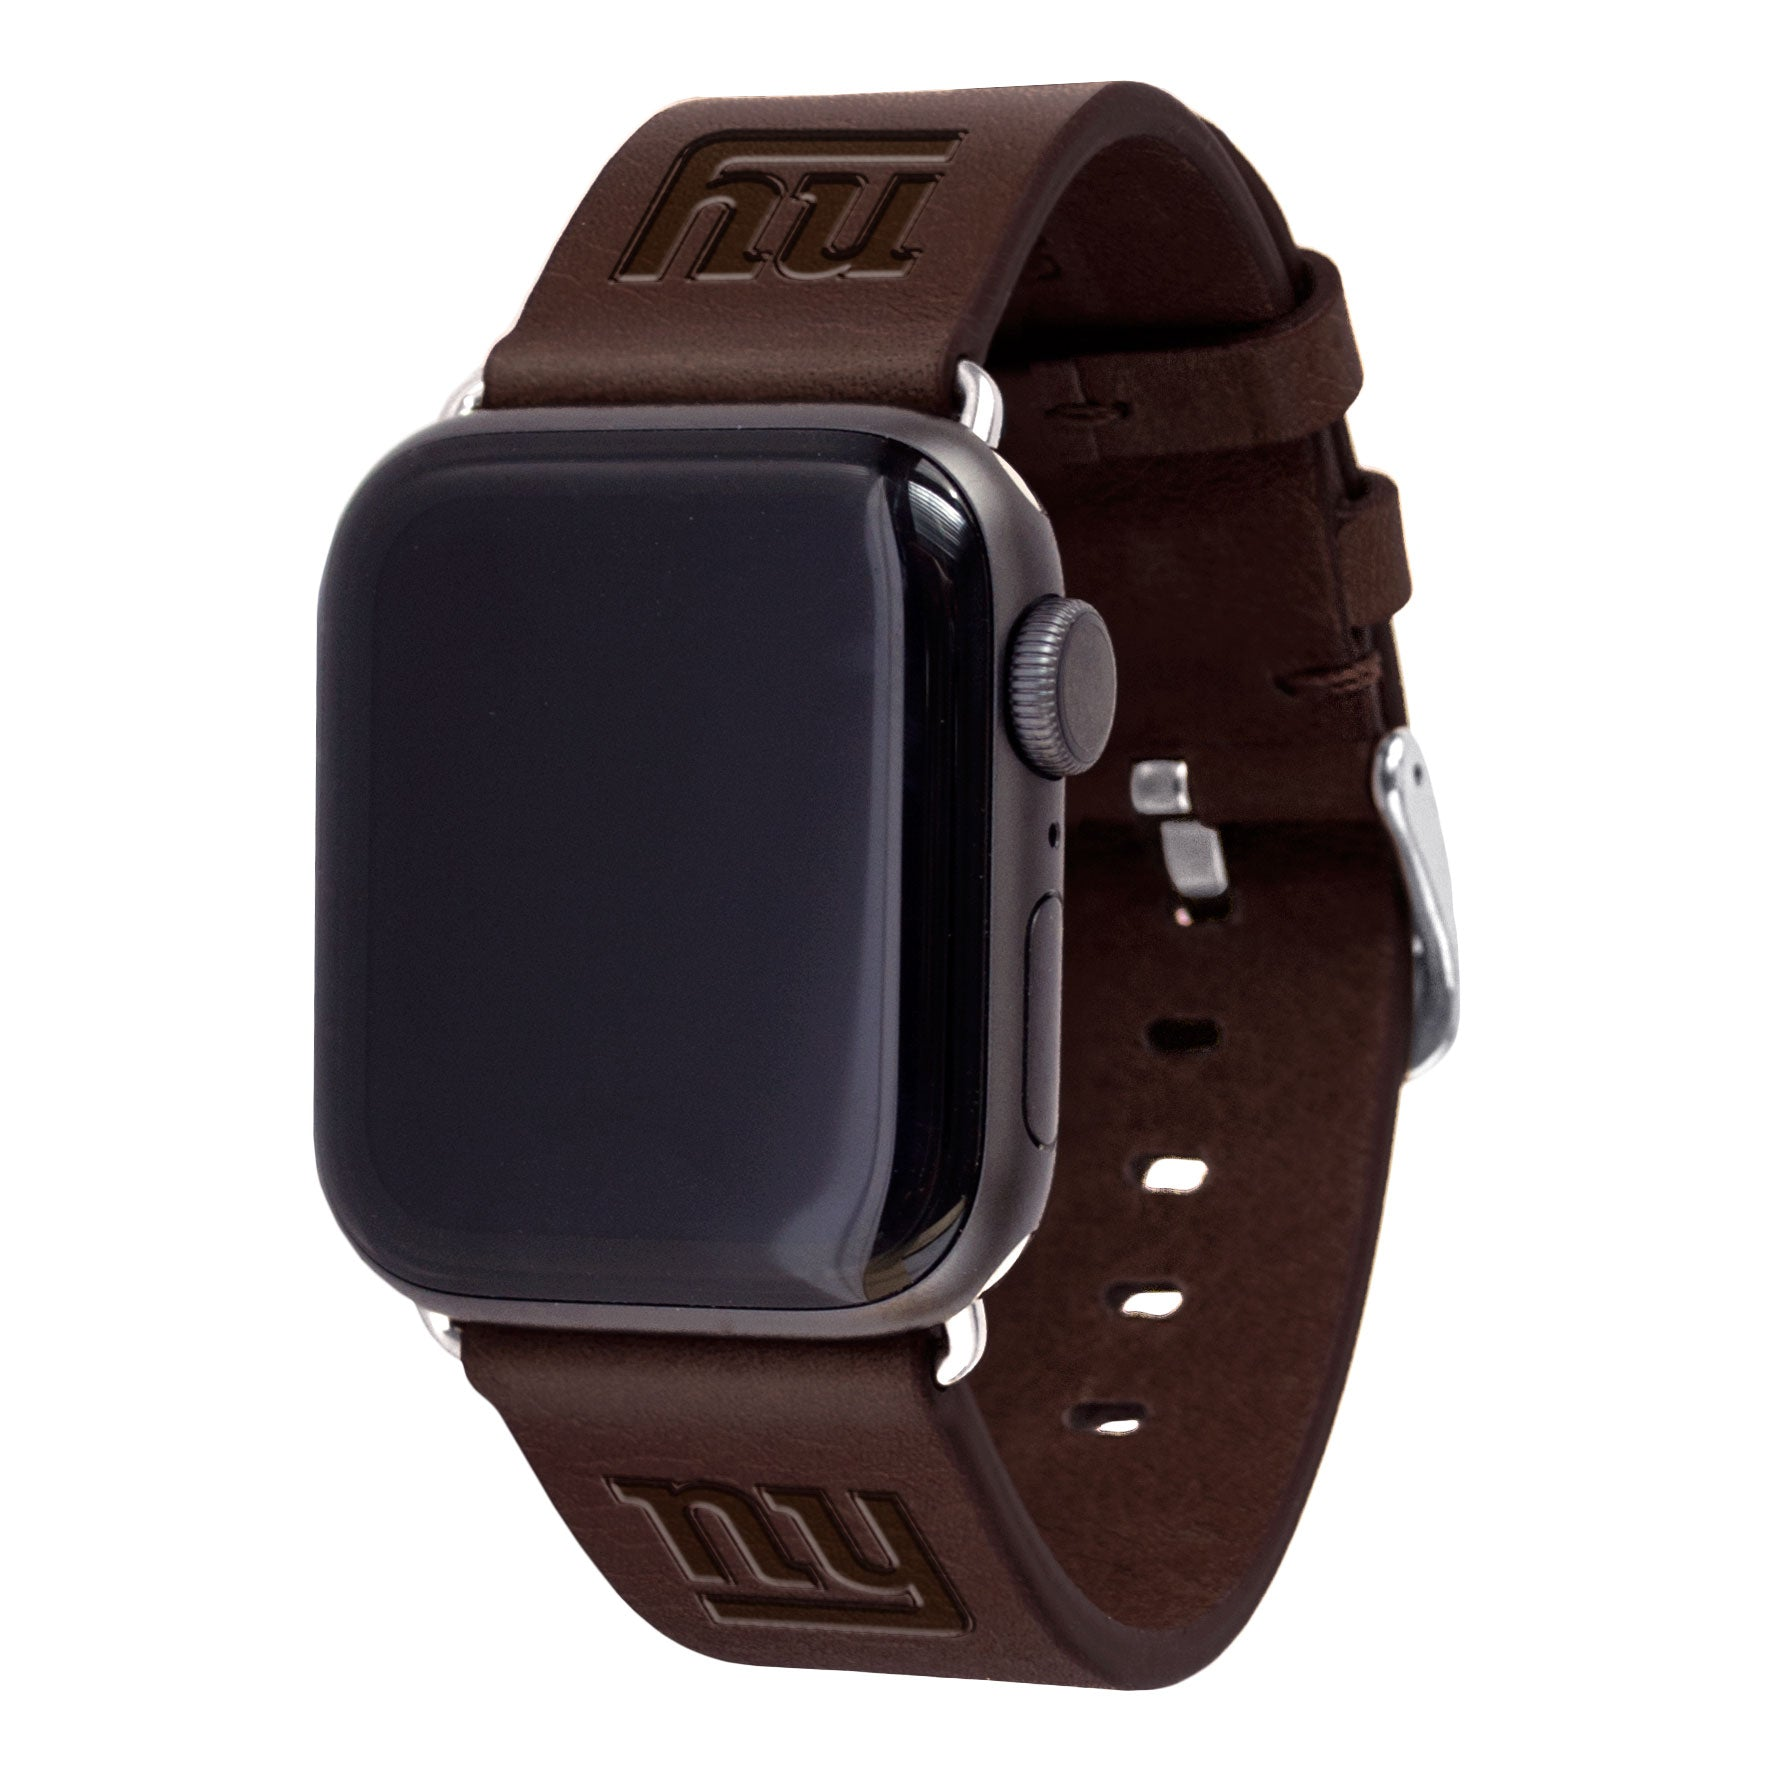 New York Giants Leather Apple Watch Band - AffinityBands